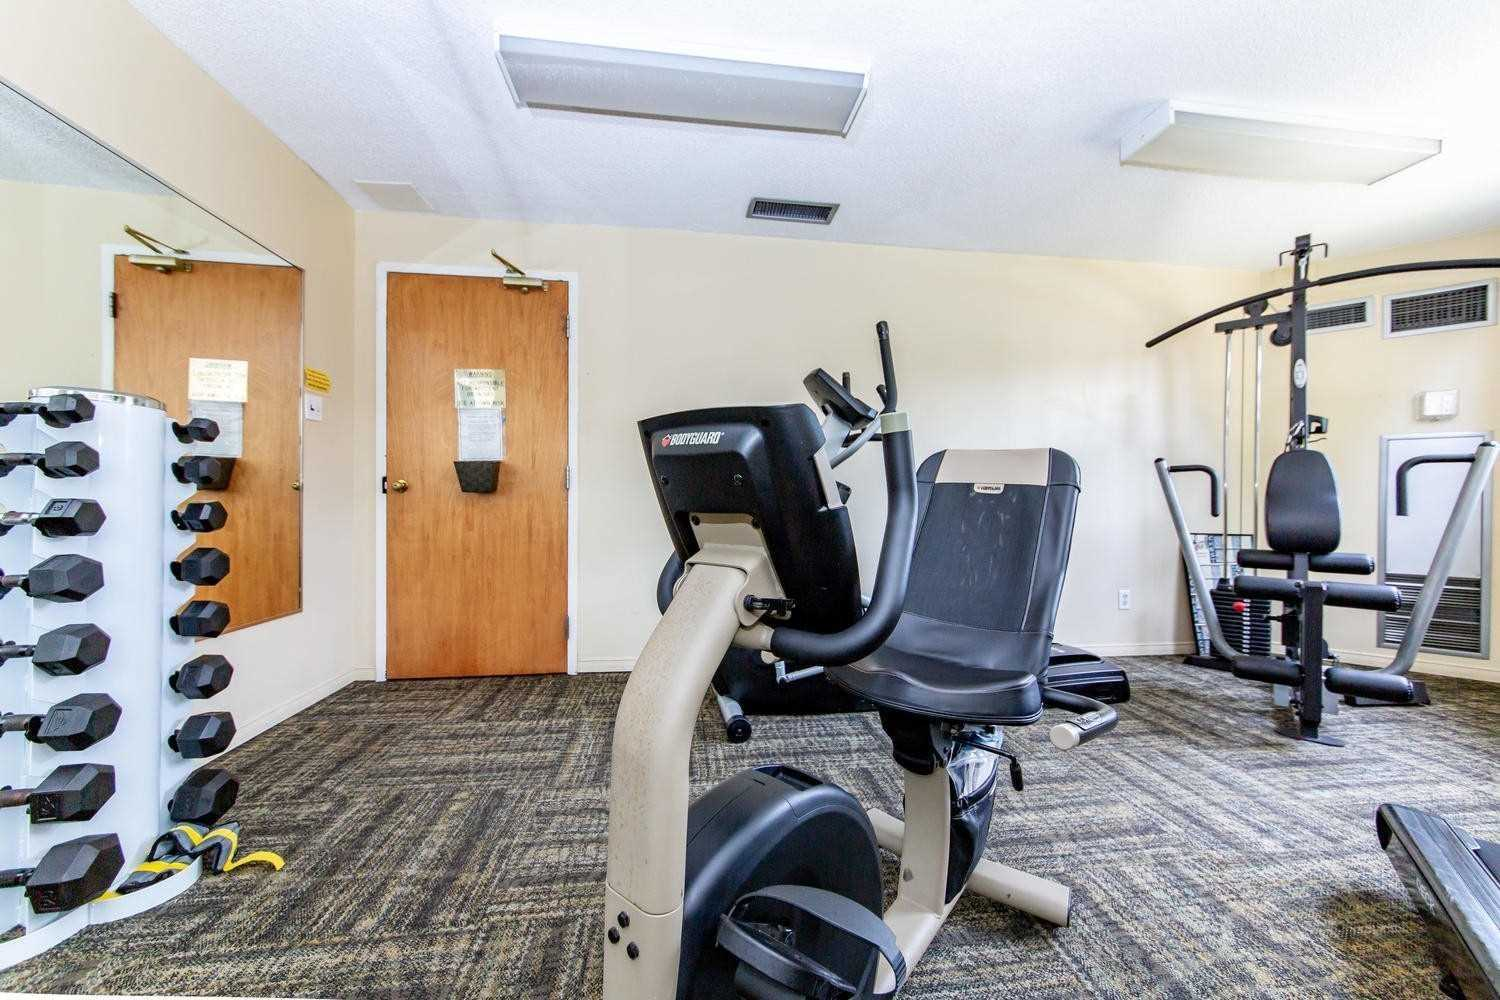 Image 16 of 25 showing inside of 2 Bedroom Condo Apt Apartment for Sale at 2 Westney Rd N Unit# 1203, Ajax L1T3H3